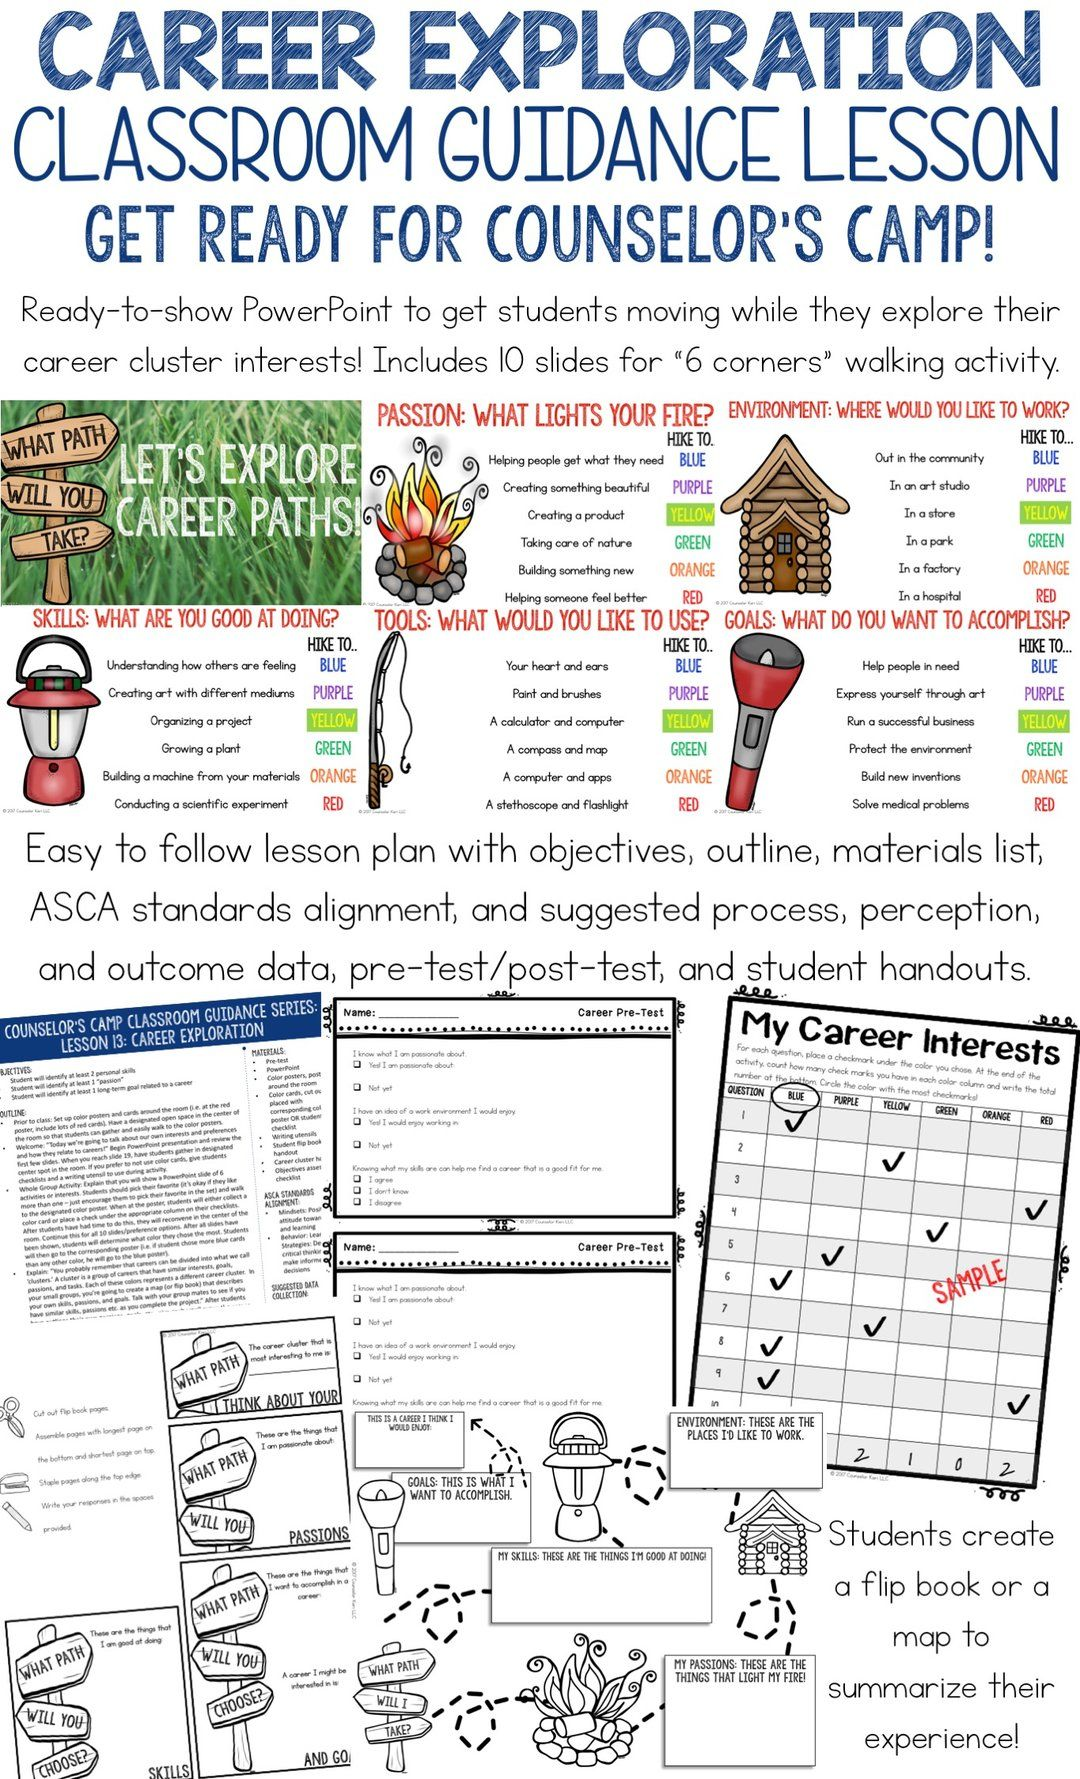 Career Exploration Classroom Guidance Lesson For